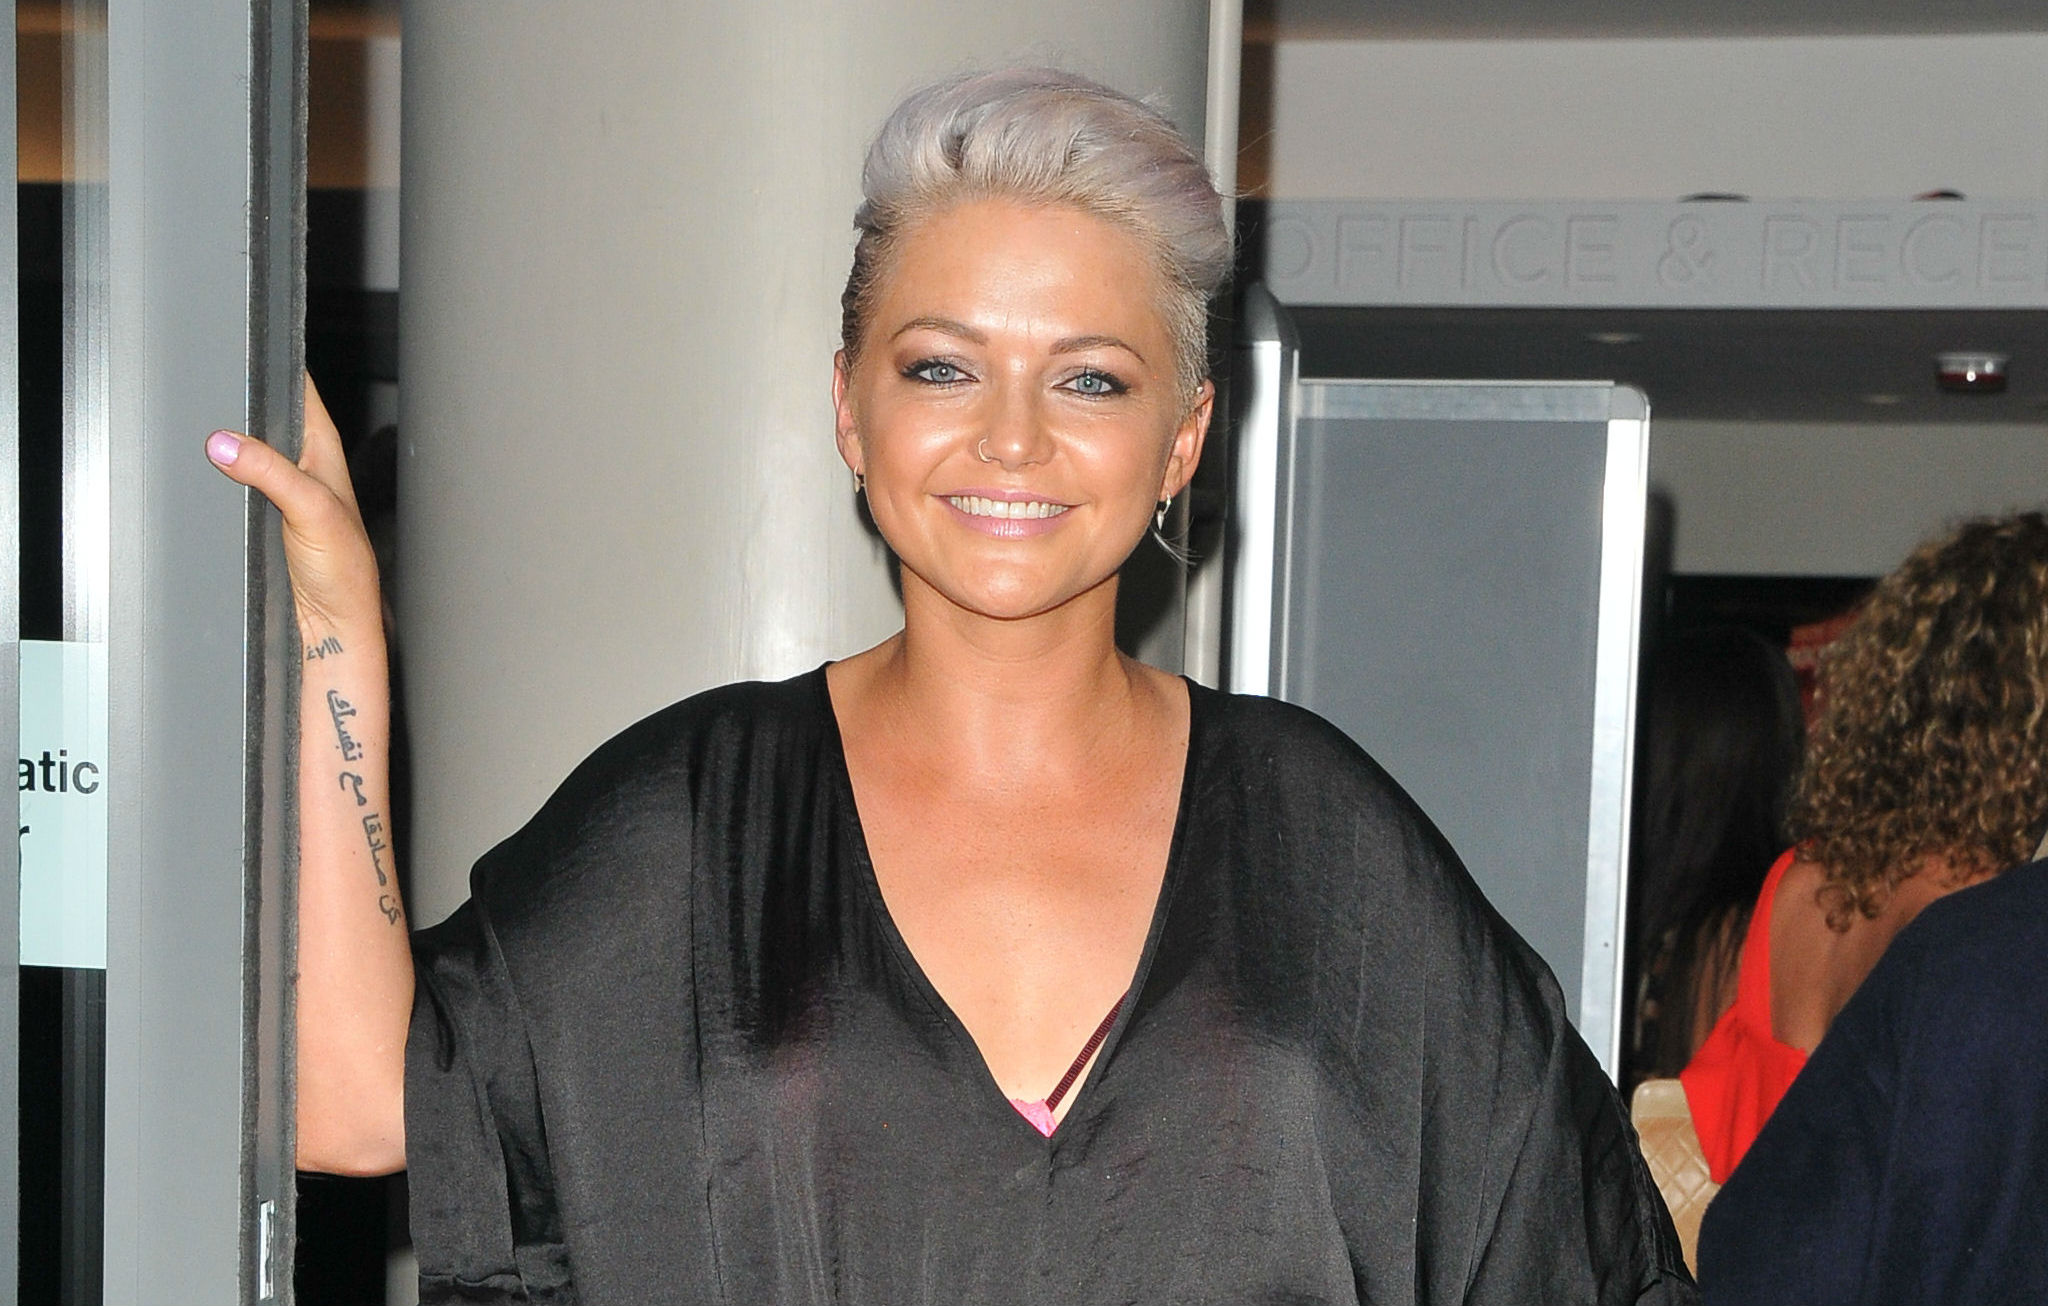 First look at S Club 7's Hannah Spearritt on EastEnders set